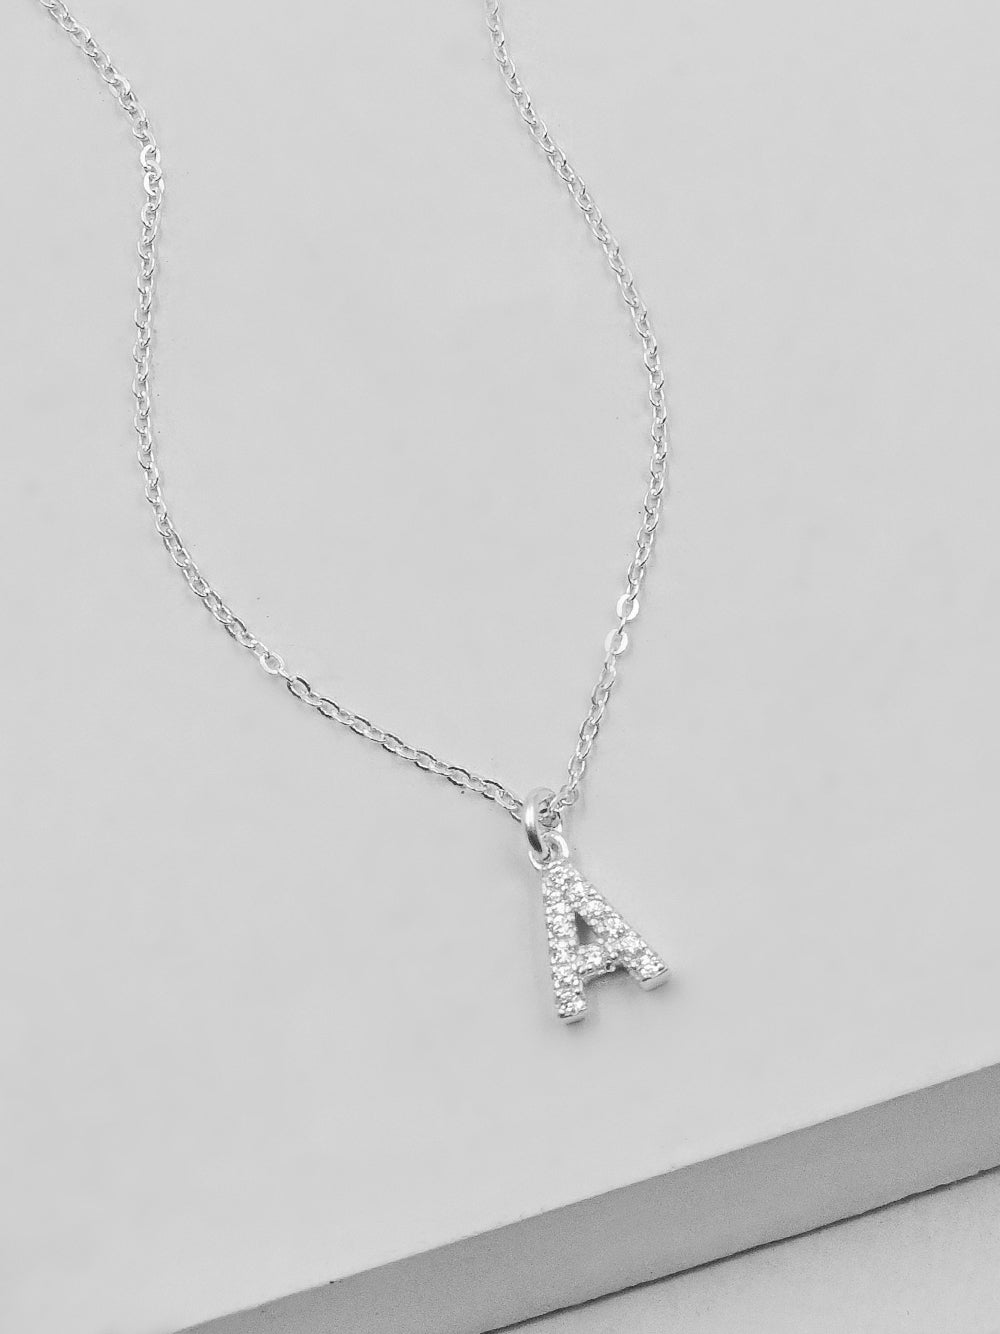 Silver CZ Initial Name Necklace by The Faint Hearted Jewelry